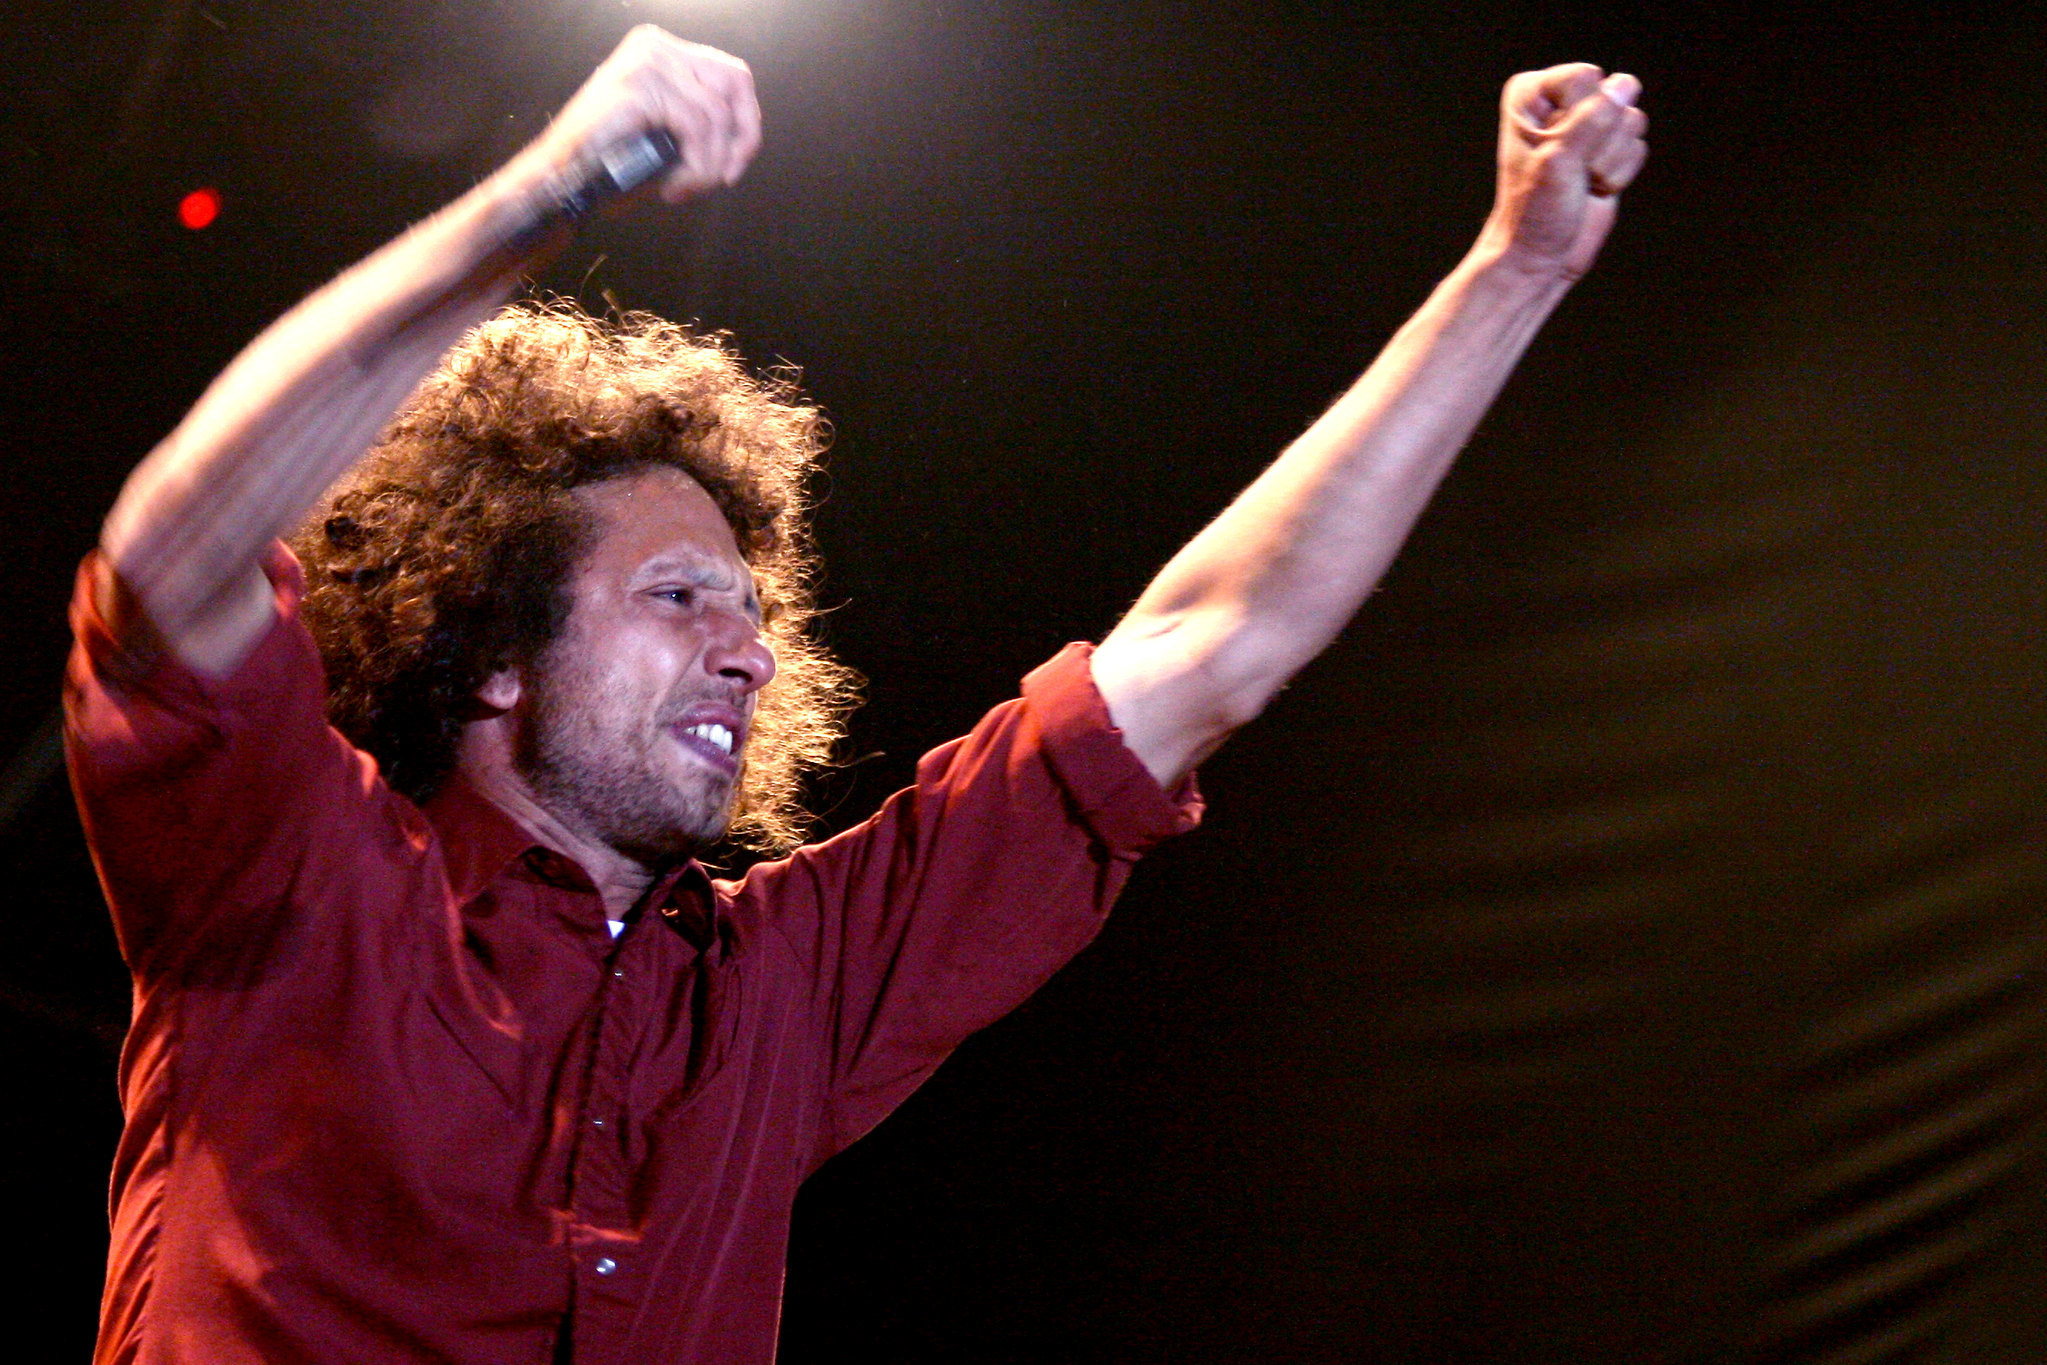 It sure sounds like Rage Against the Machine is playing Coachella 2020